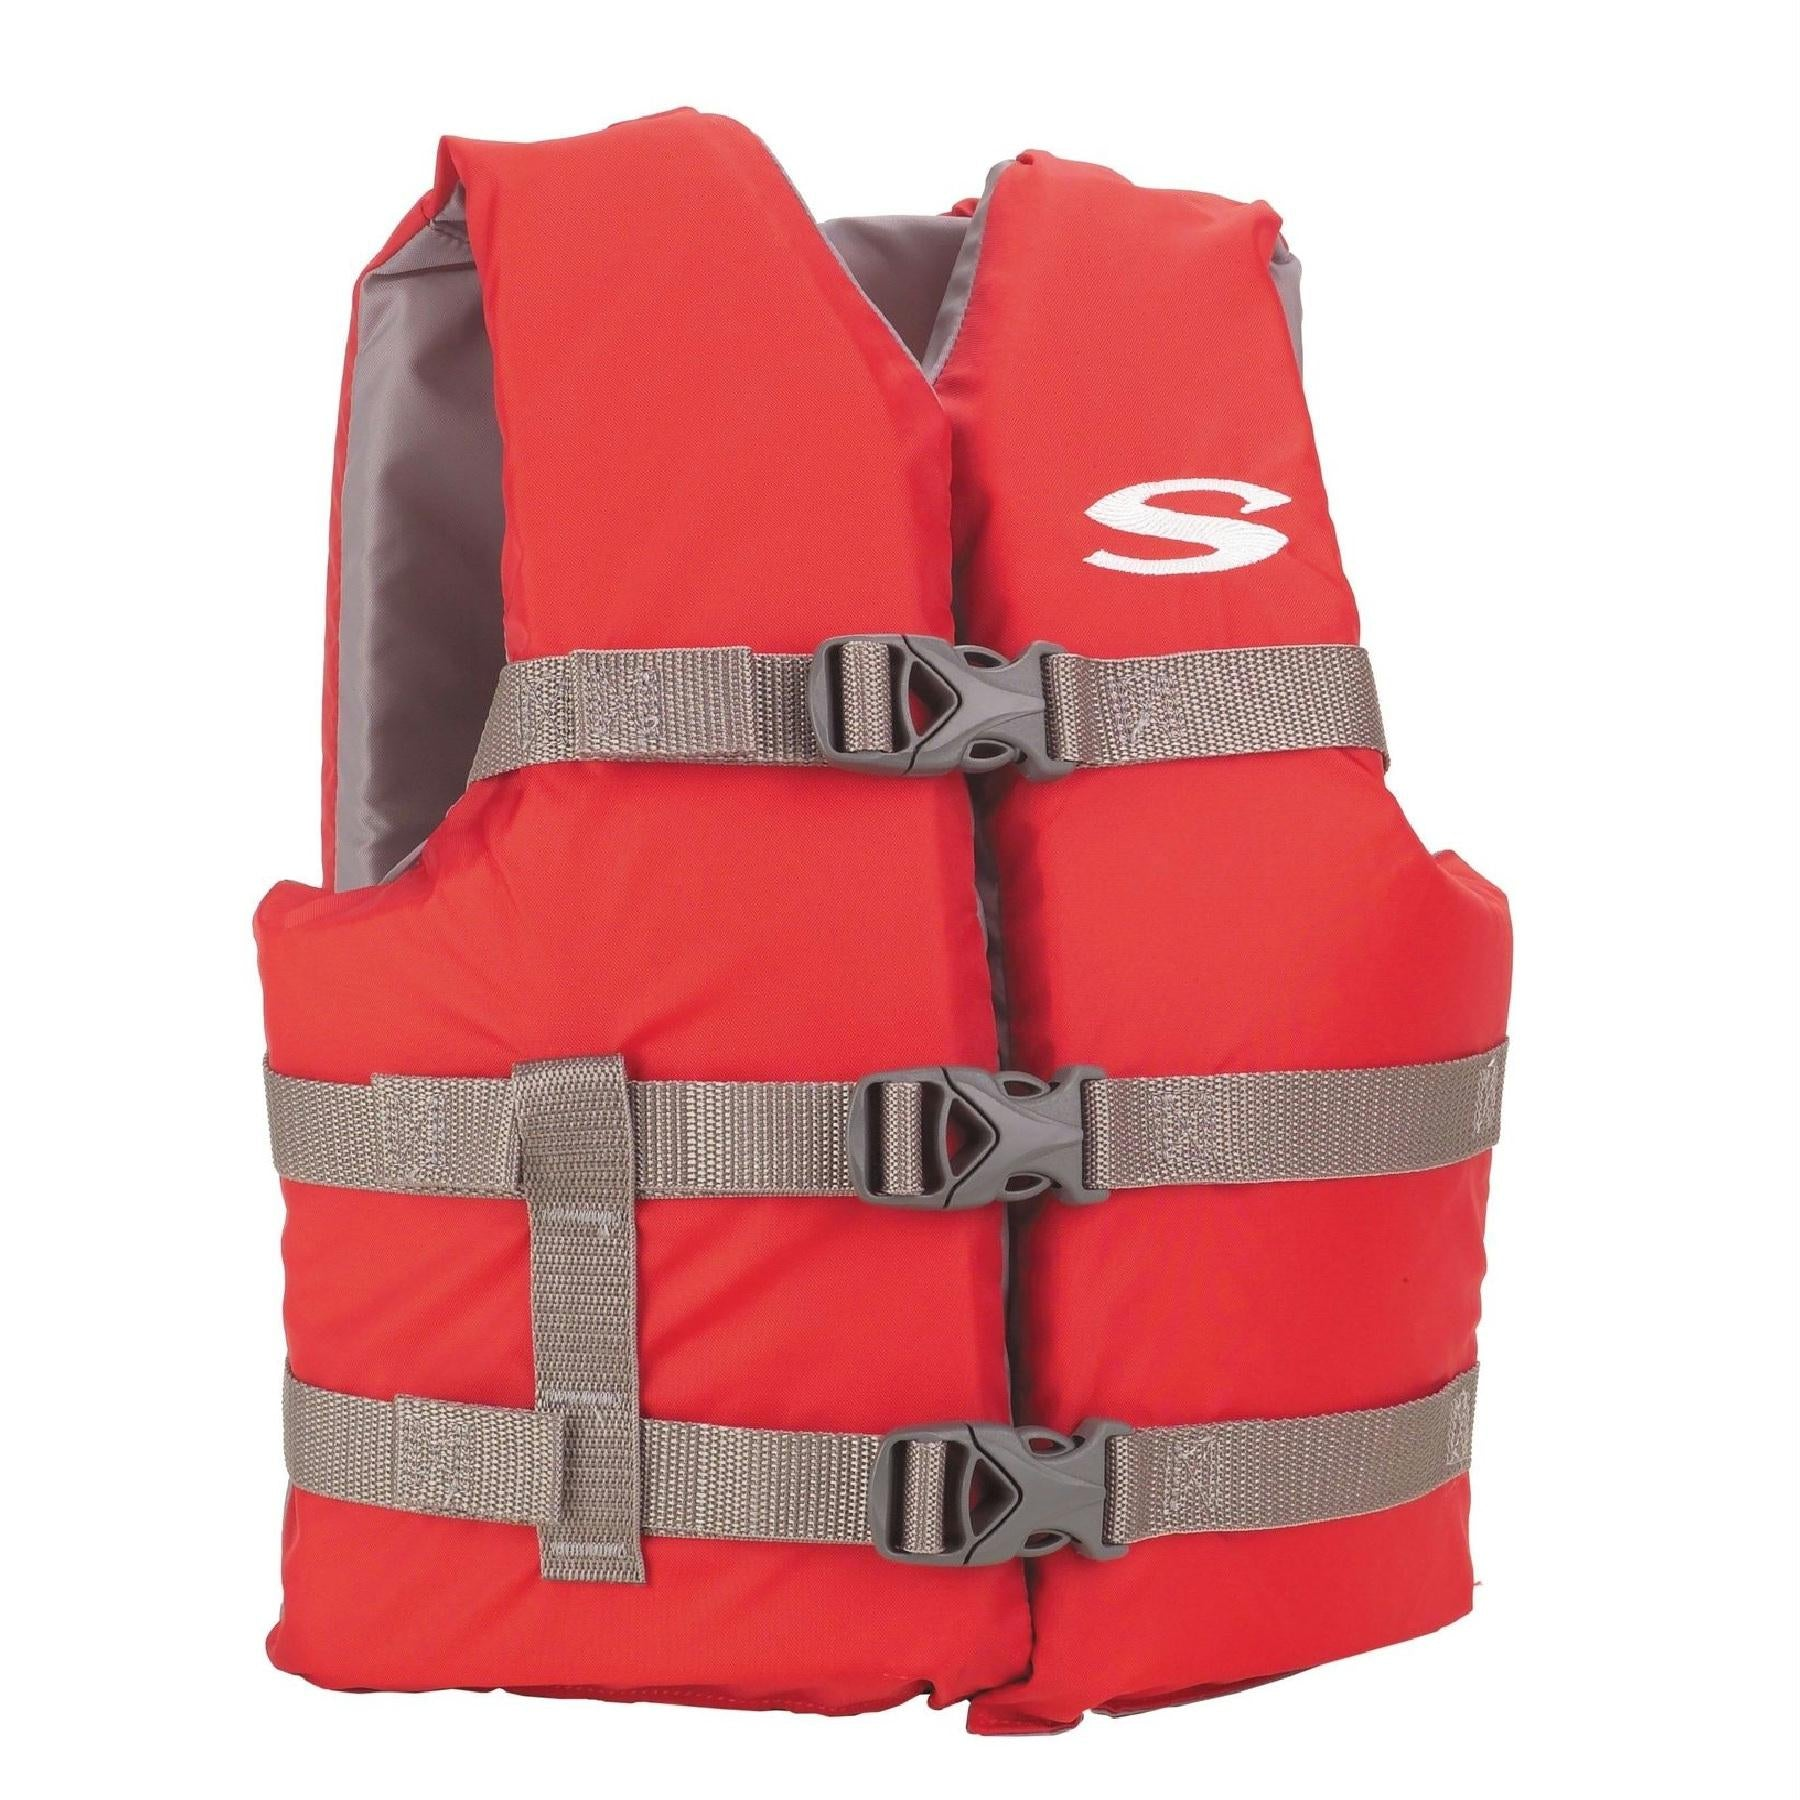 adfc08b58 Stearns Pfd 3007 Cat Boating Vest Youth Red 3000001415 - FlyRods.com. An  online